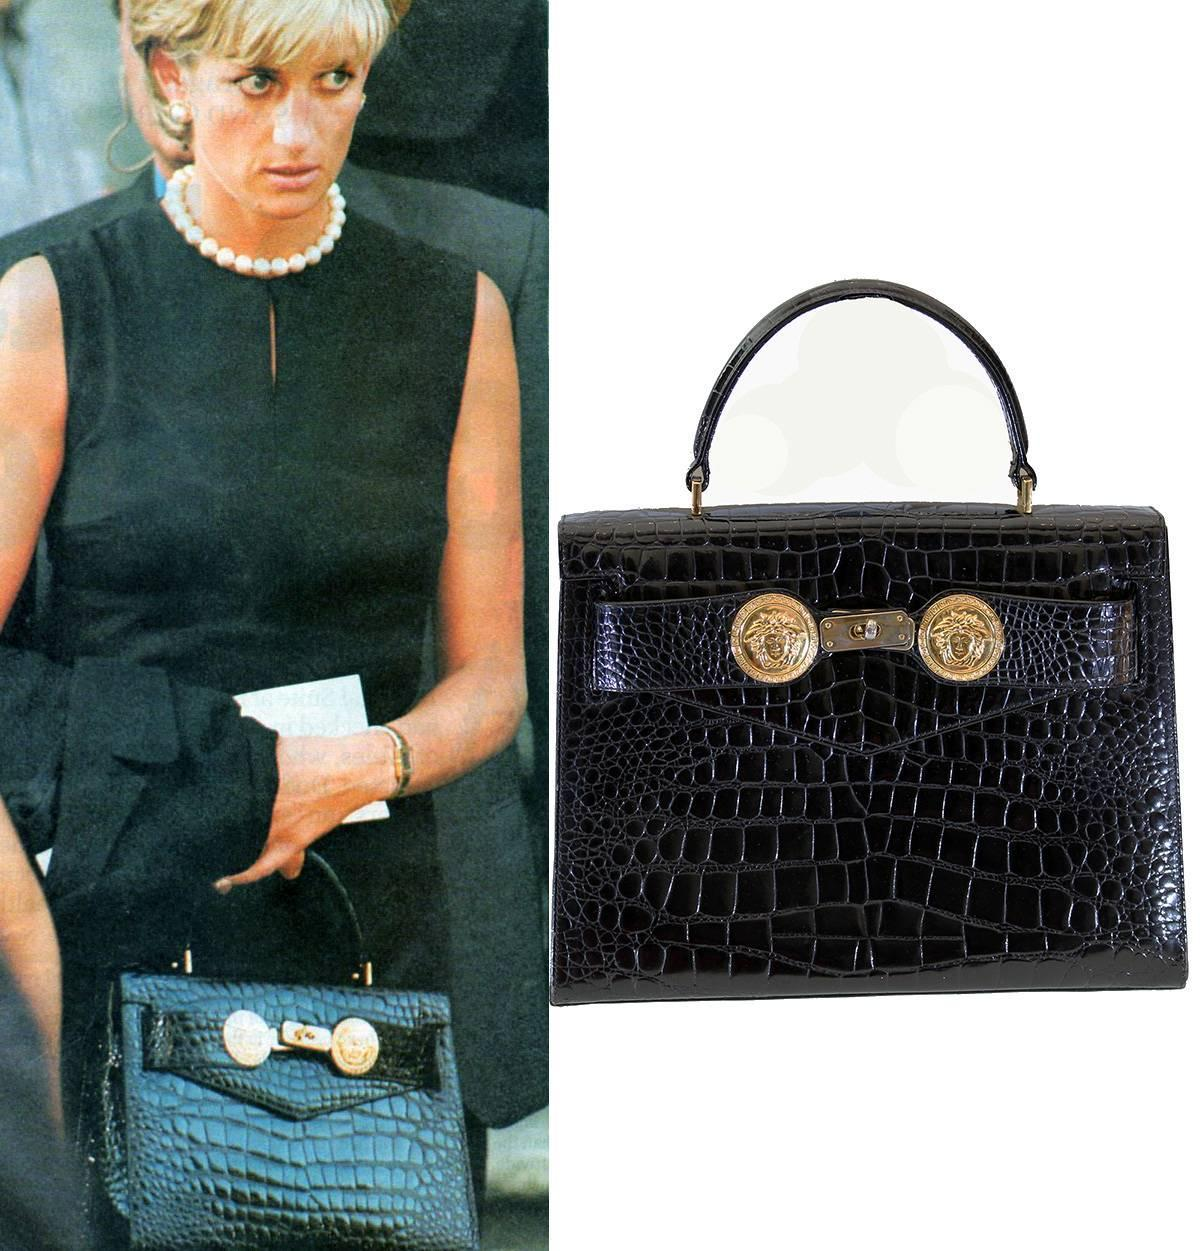 RARE AND COLLECTIBLE GIANNI VERSACE COUTURE BAG Princess Diana owned the  same! at 1stdibs 88c0c7a135